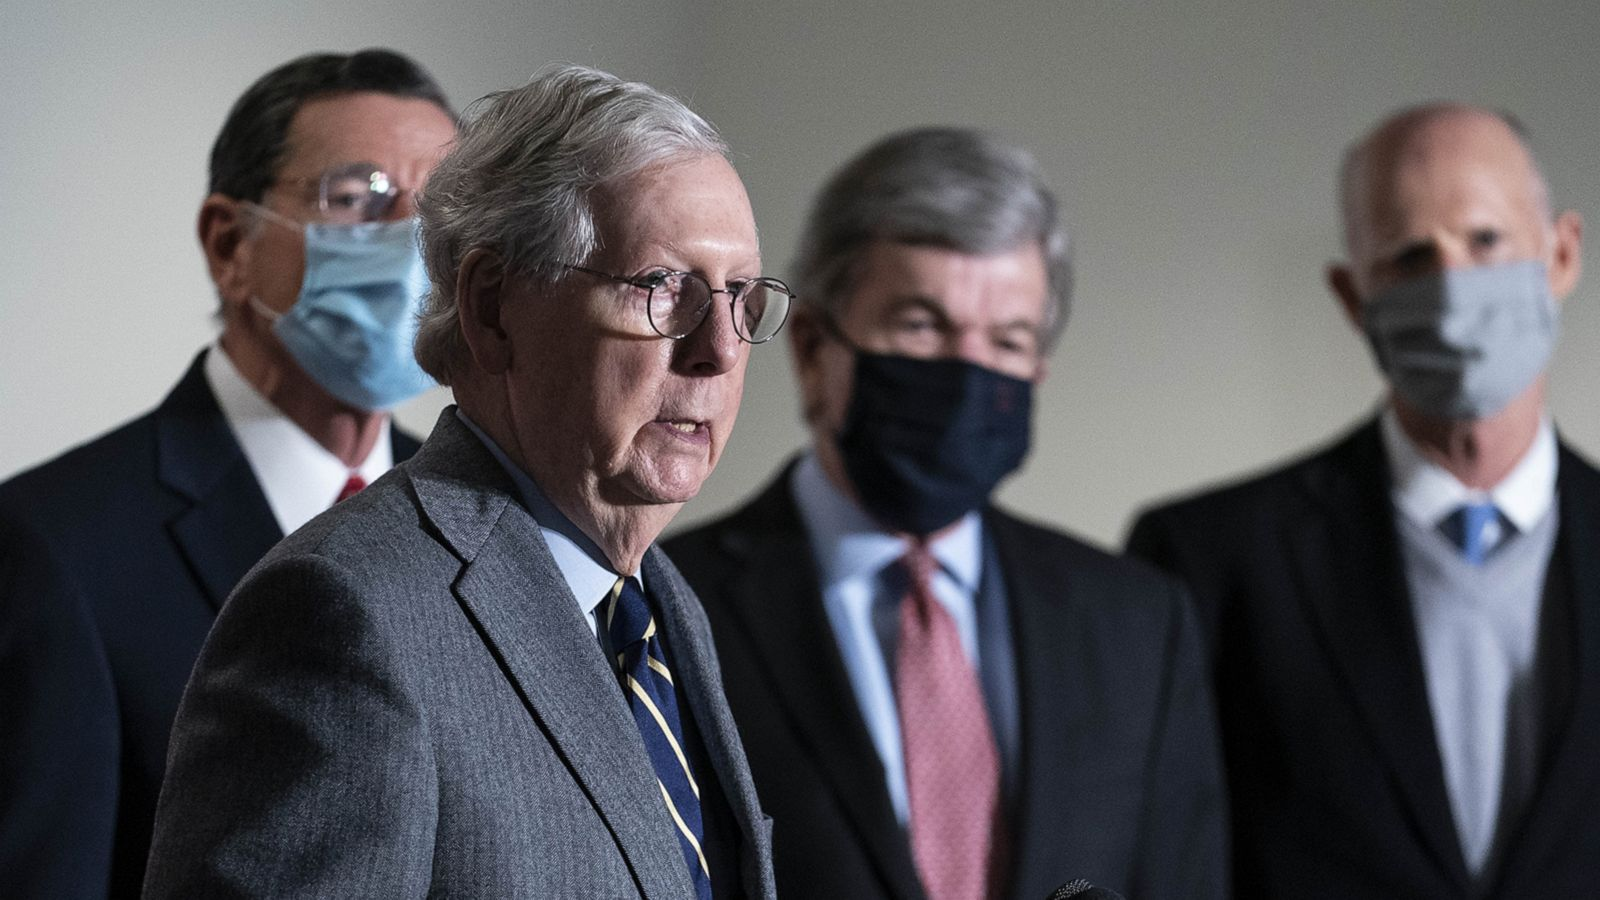 What will the Republican Party do about the extremists in its ranks?